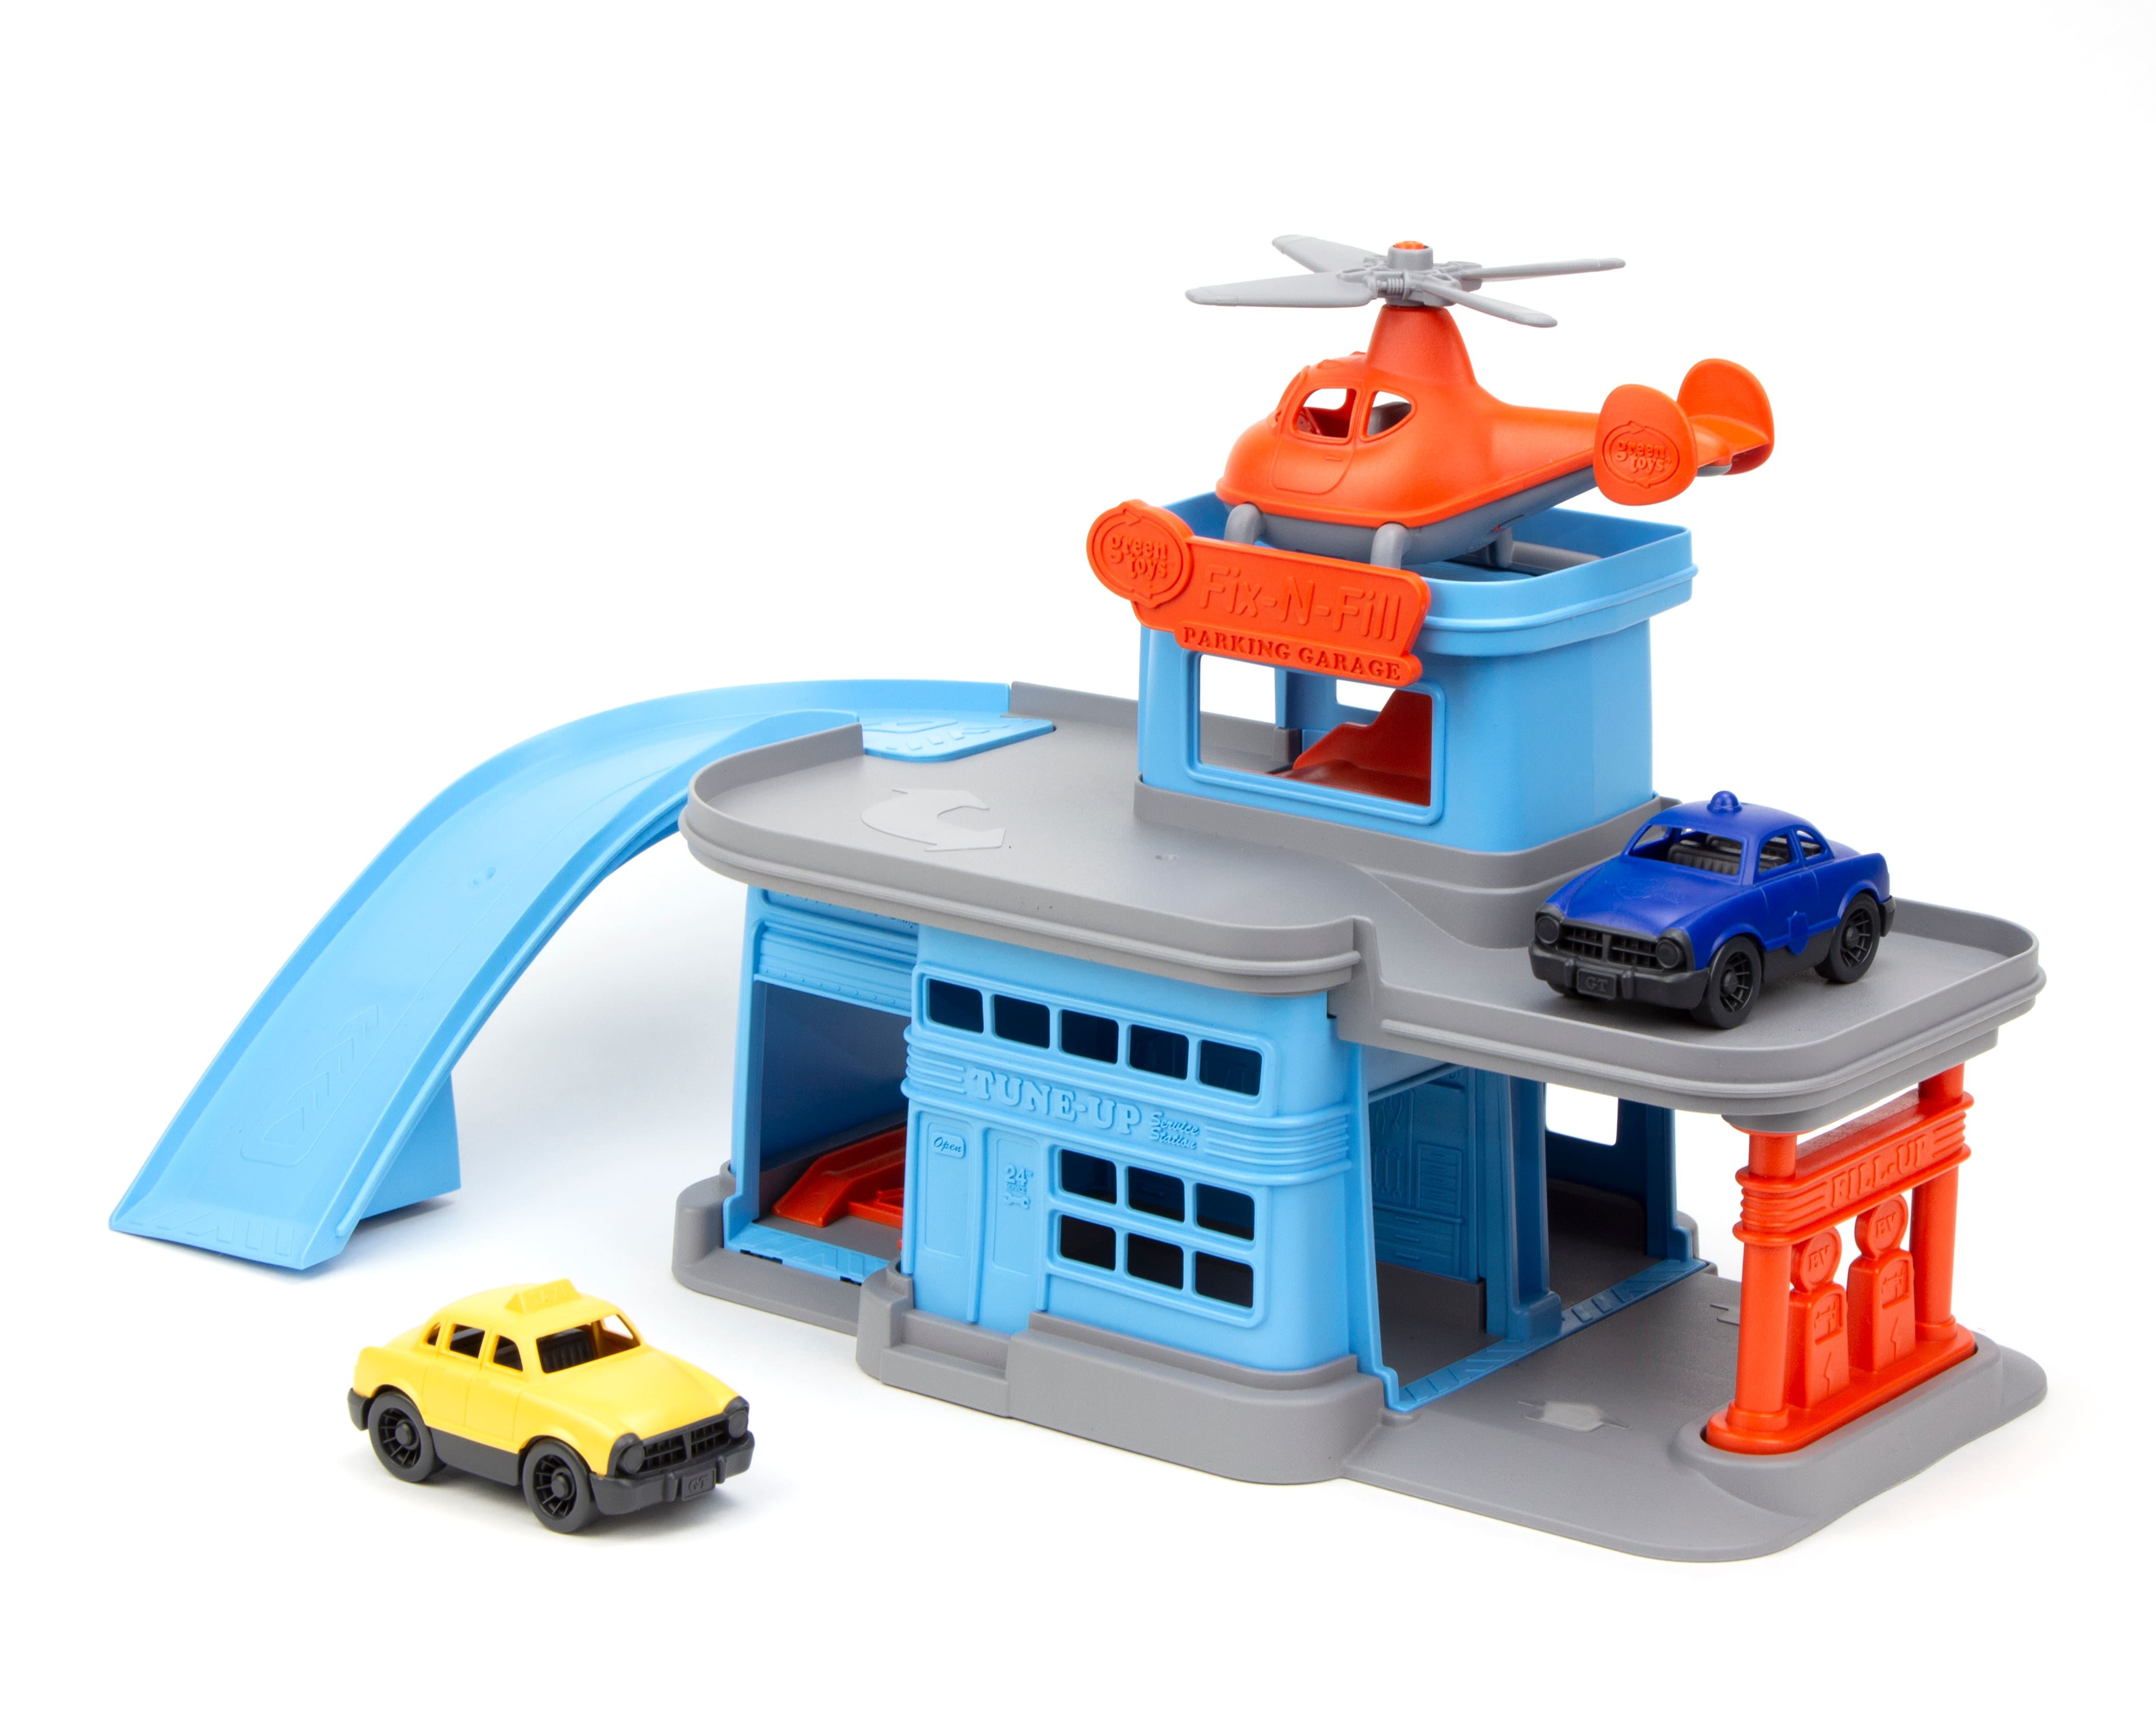 Green Toys Parking Garage w/ 3 Vehicles $19.44